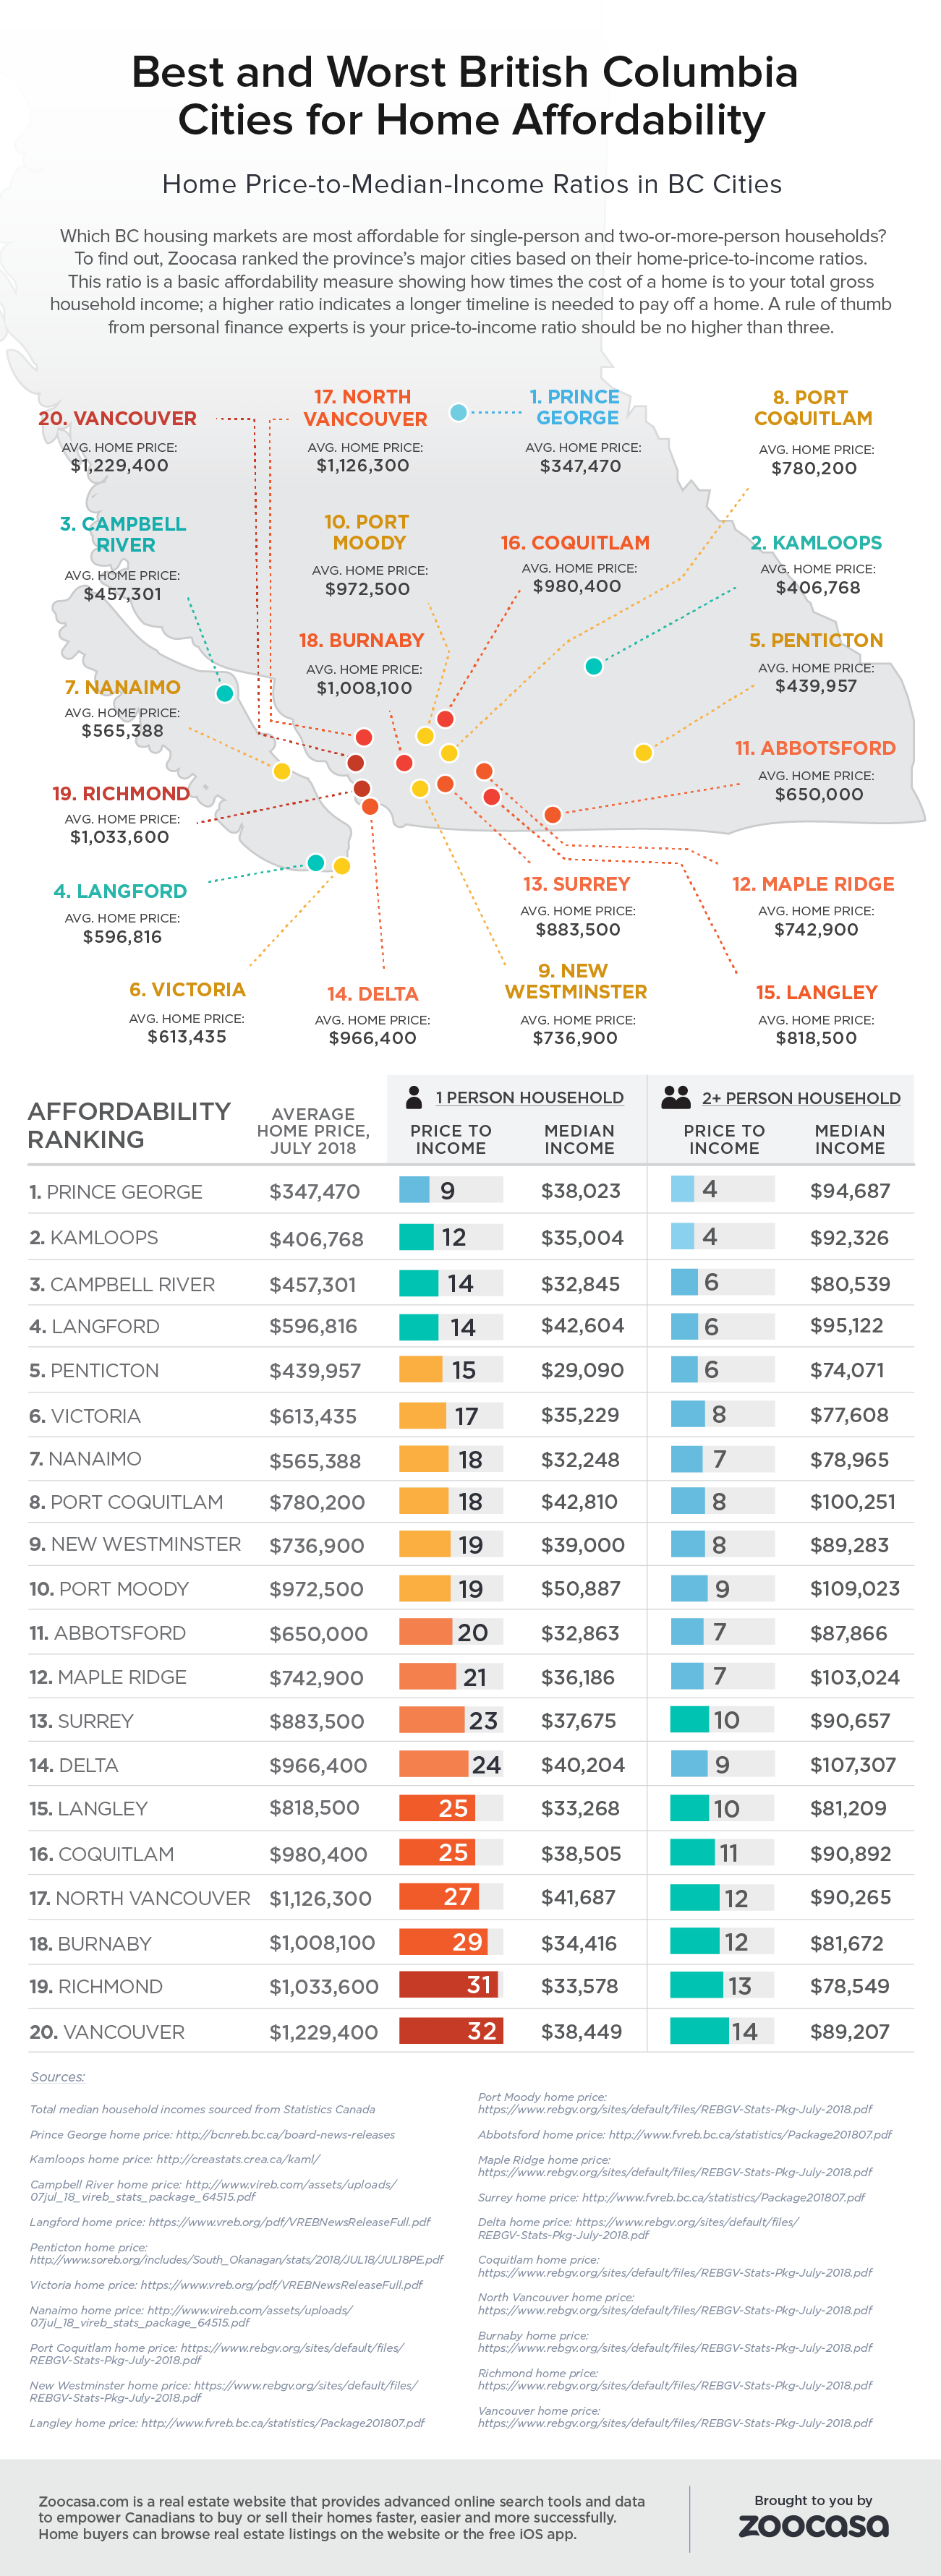 Most and Least Affordable BC Cities for Homes